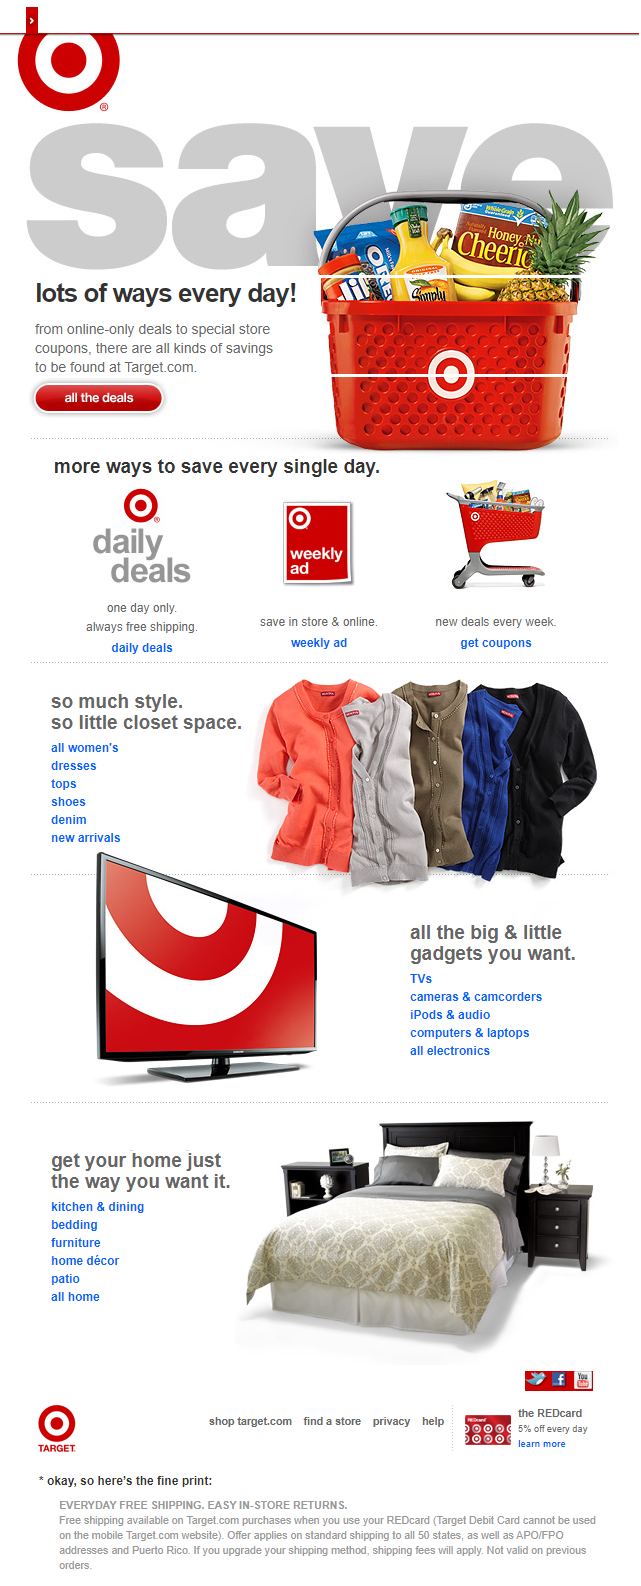 target-save-every-day-with-coupons-our-weekly-ad-more